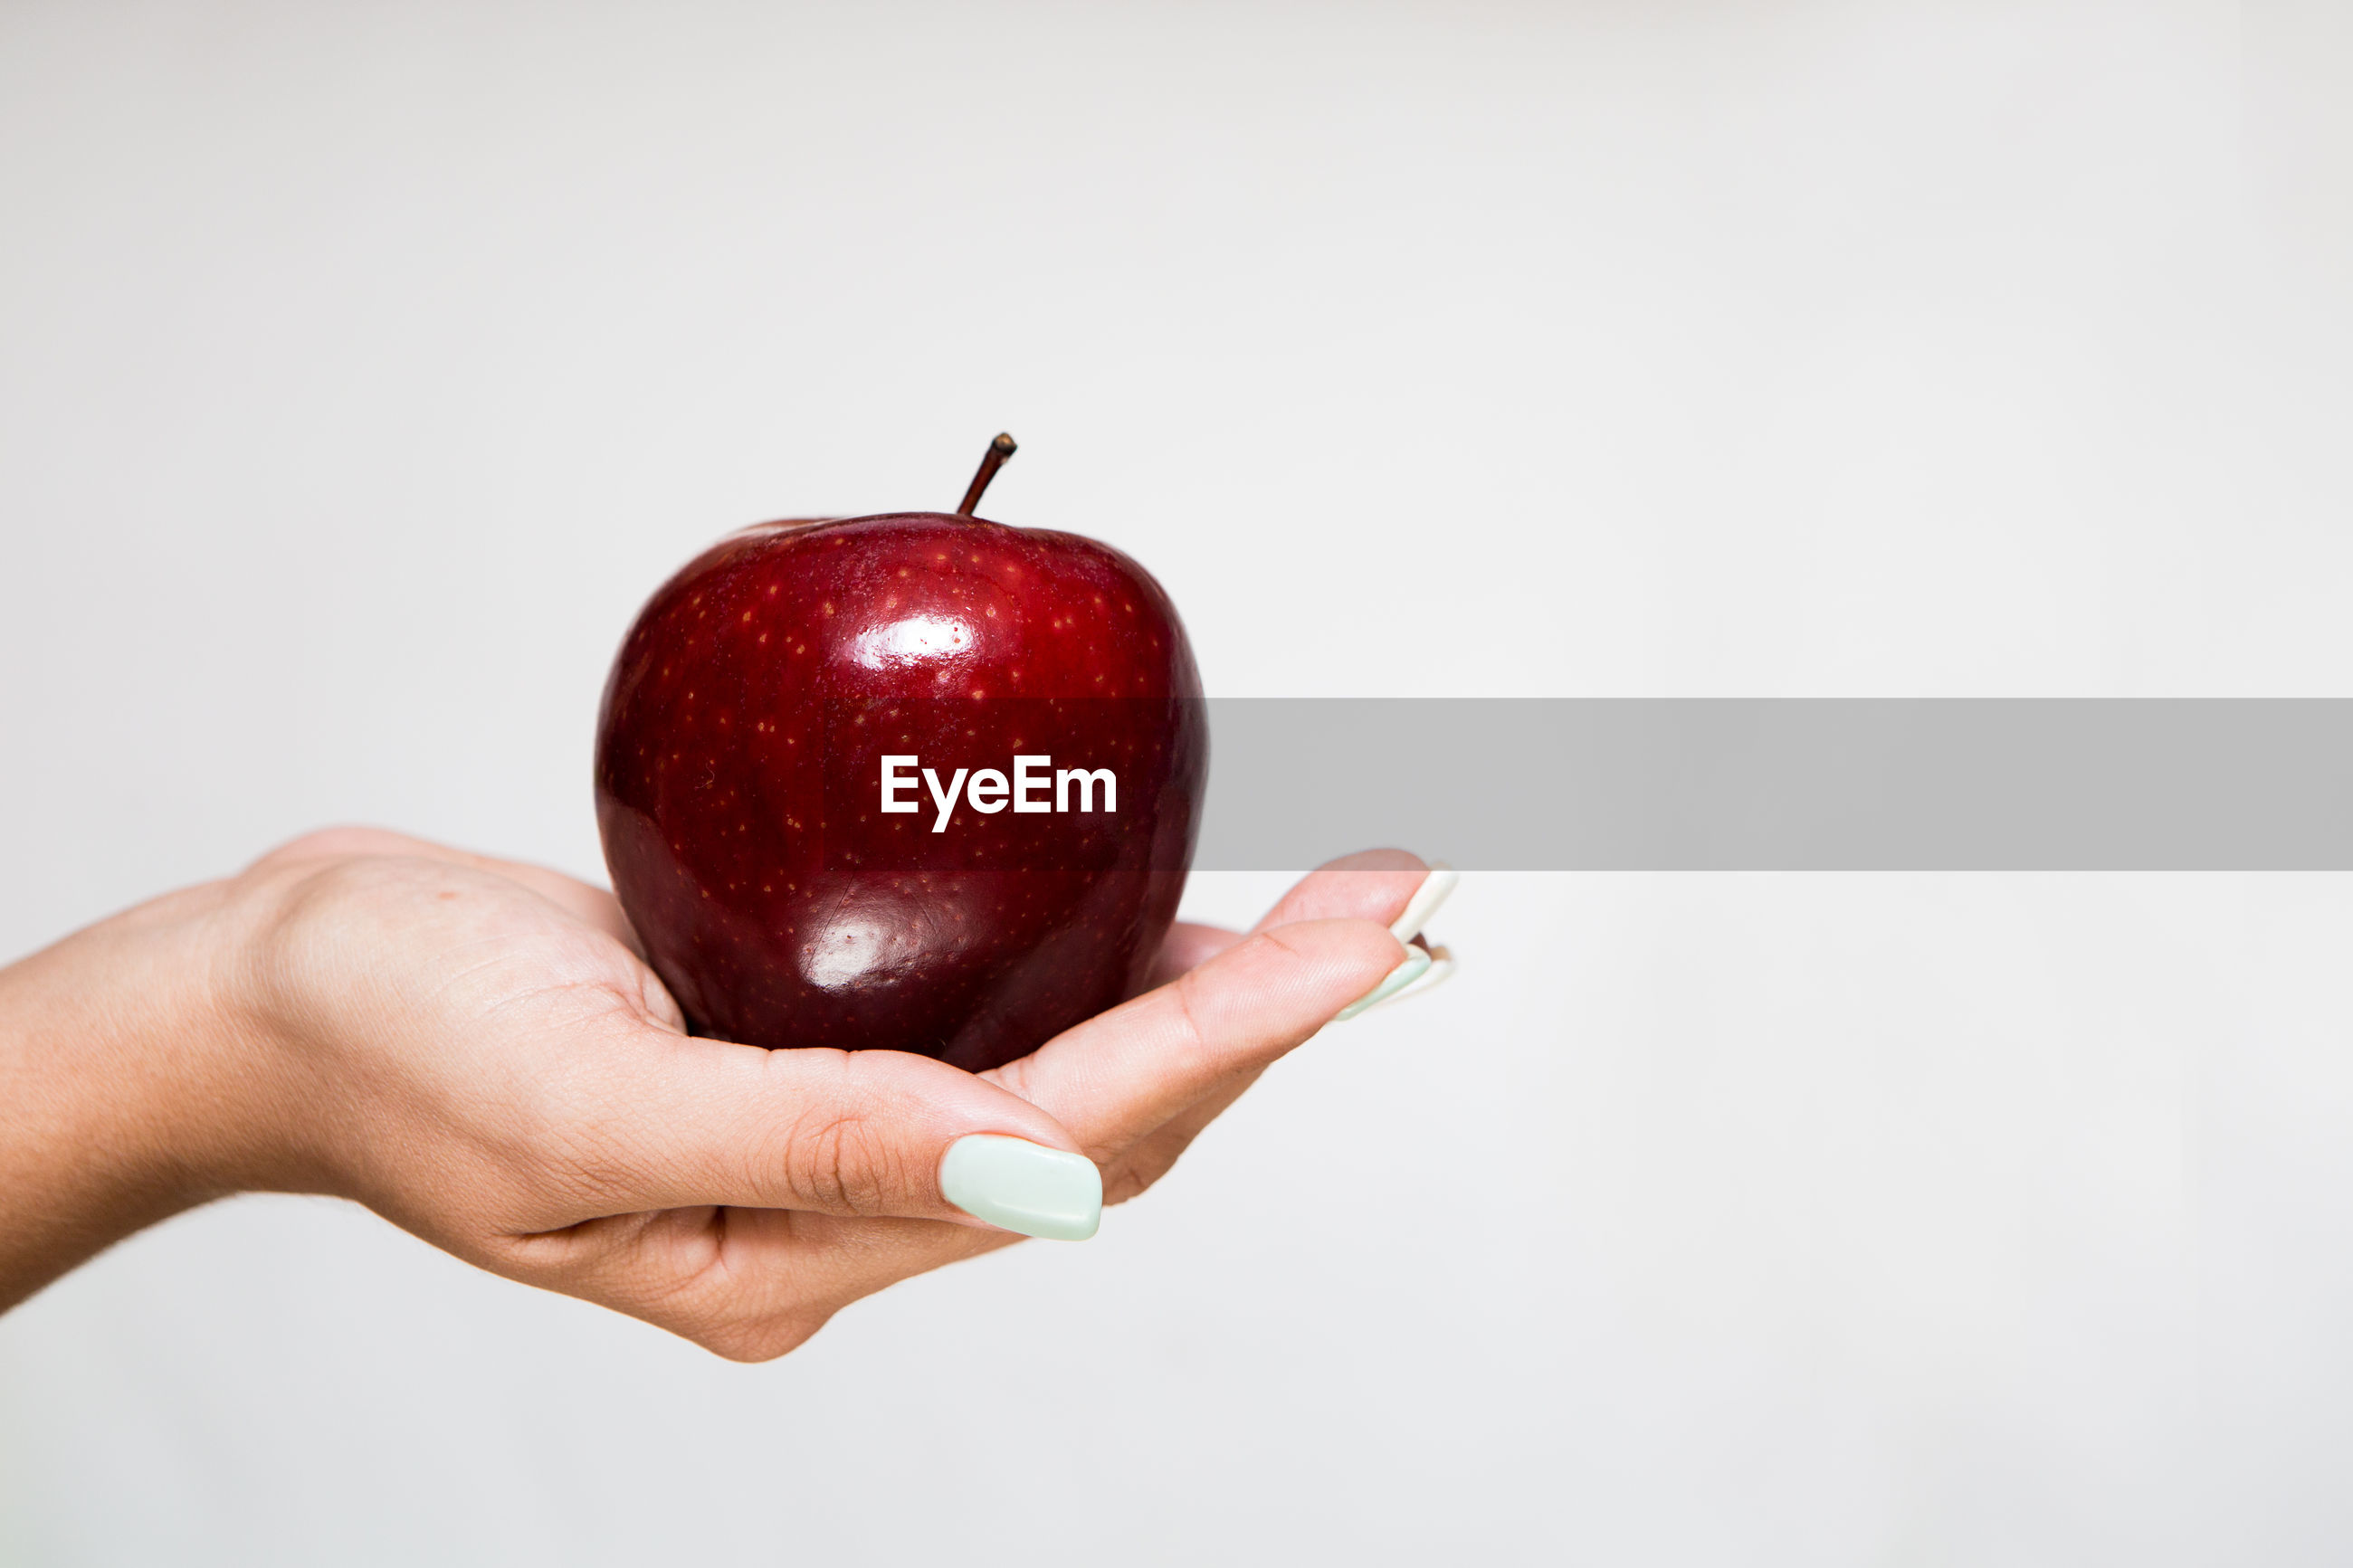 human hand, hand, studio shot, red, fruit, holding, human body part, indoors, one person, white background, food, healthy eating, copy space, food and drink, apple - fruit, wellbeing, close-up, real people, lifestyles, finger, temptation, human limb